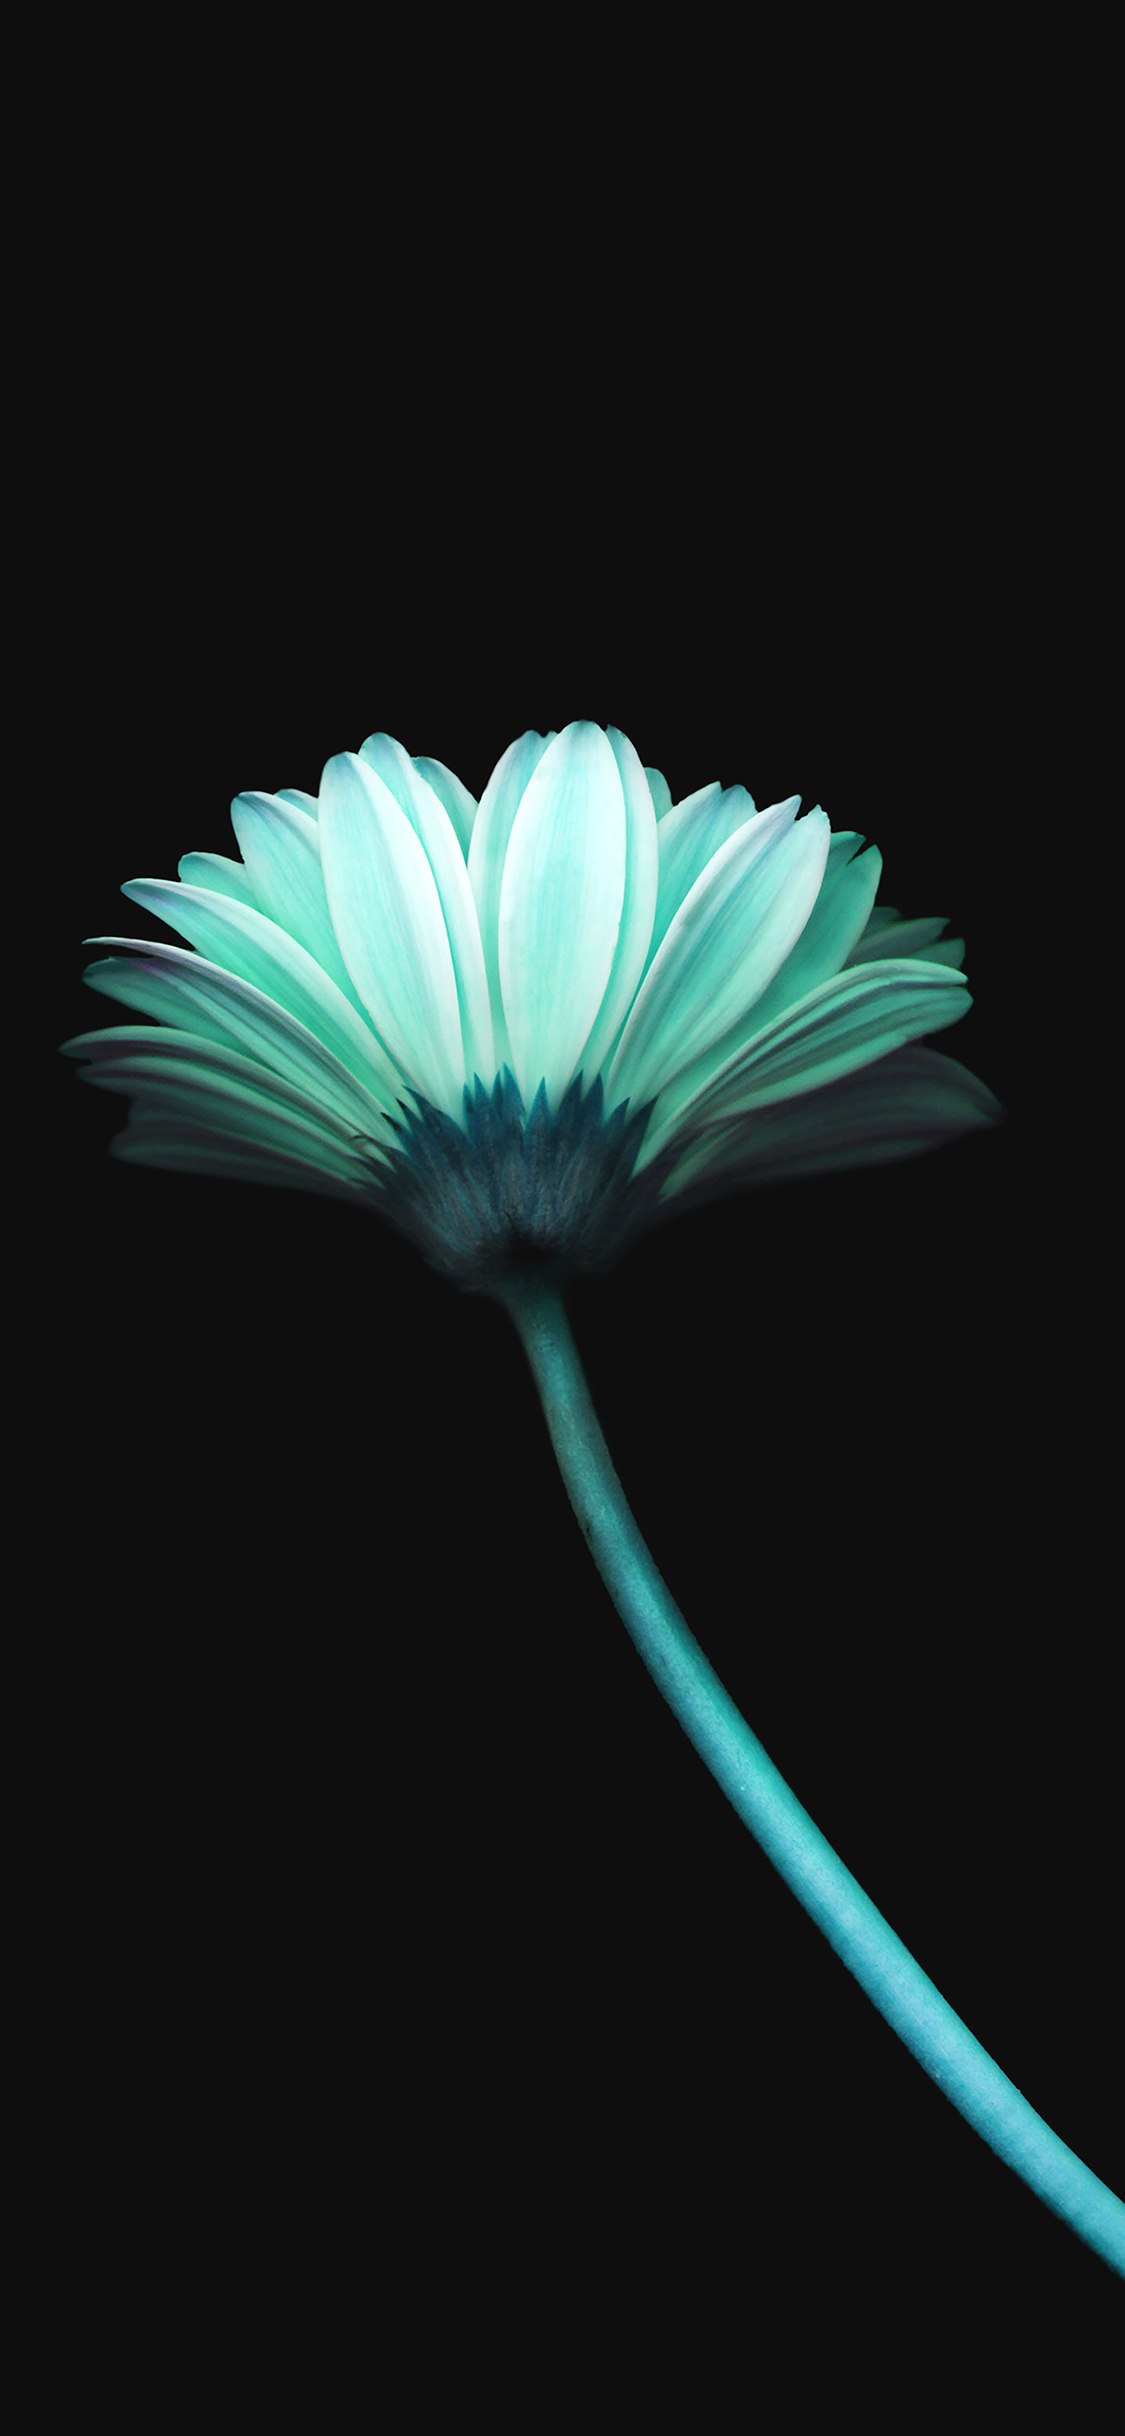 mk69-lonely-flower-dark-blue-simple-minimal-nature - Papers.co